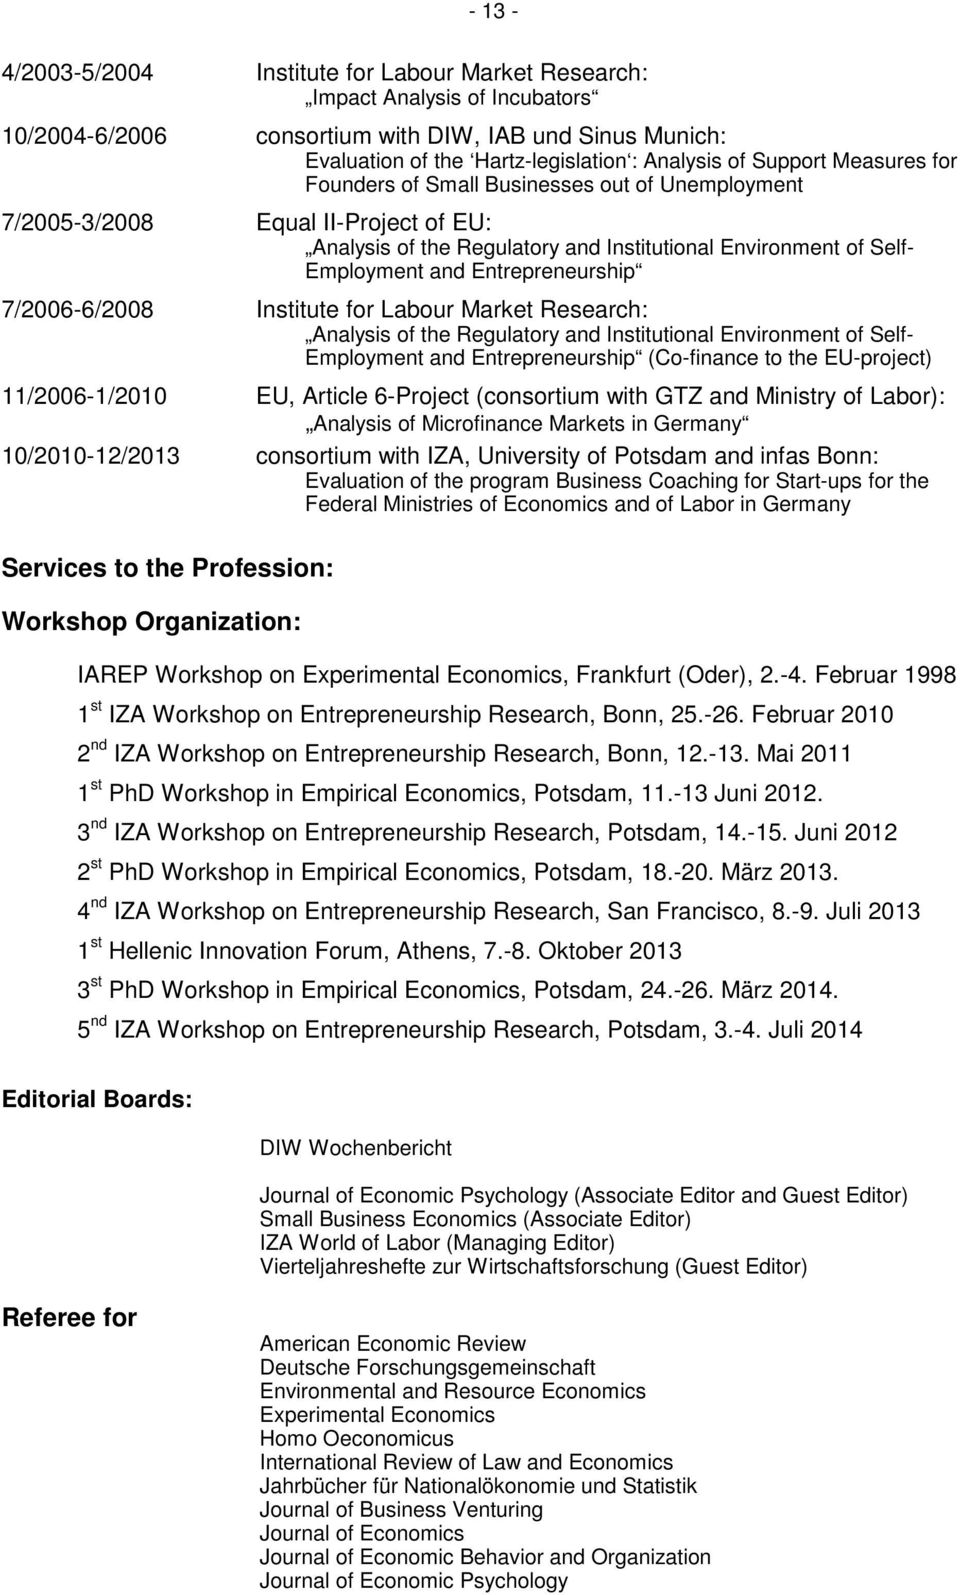 Entrepreneurship 7/2006-6/2008 Institute for Labour Market Research: Analysis of the Regulatory and Institutional Environment of Self- Employment and Entrepreneurship (Co-finance to the EU-project)